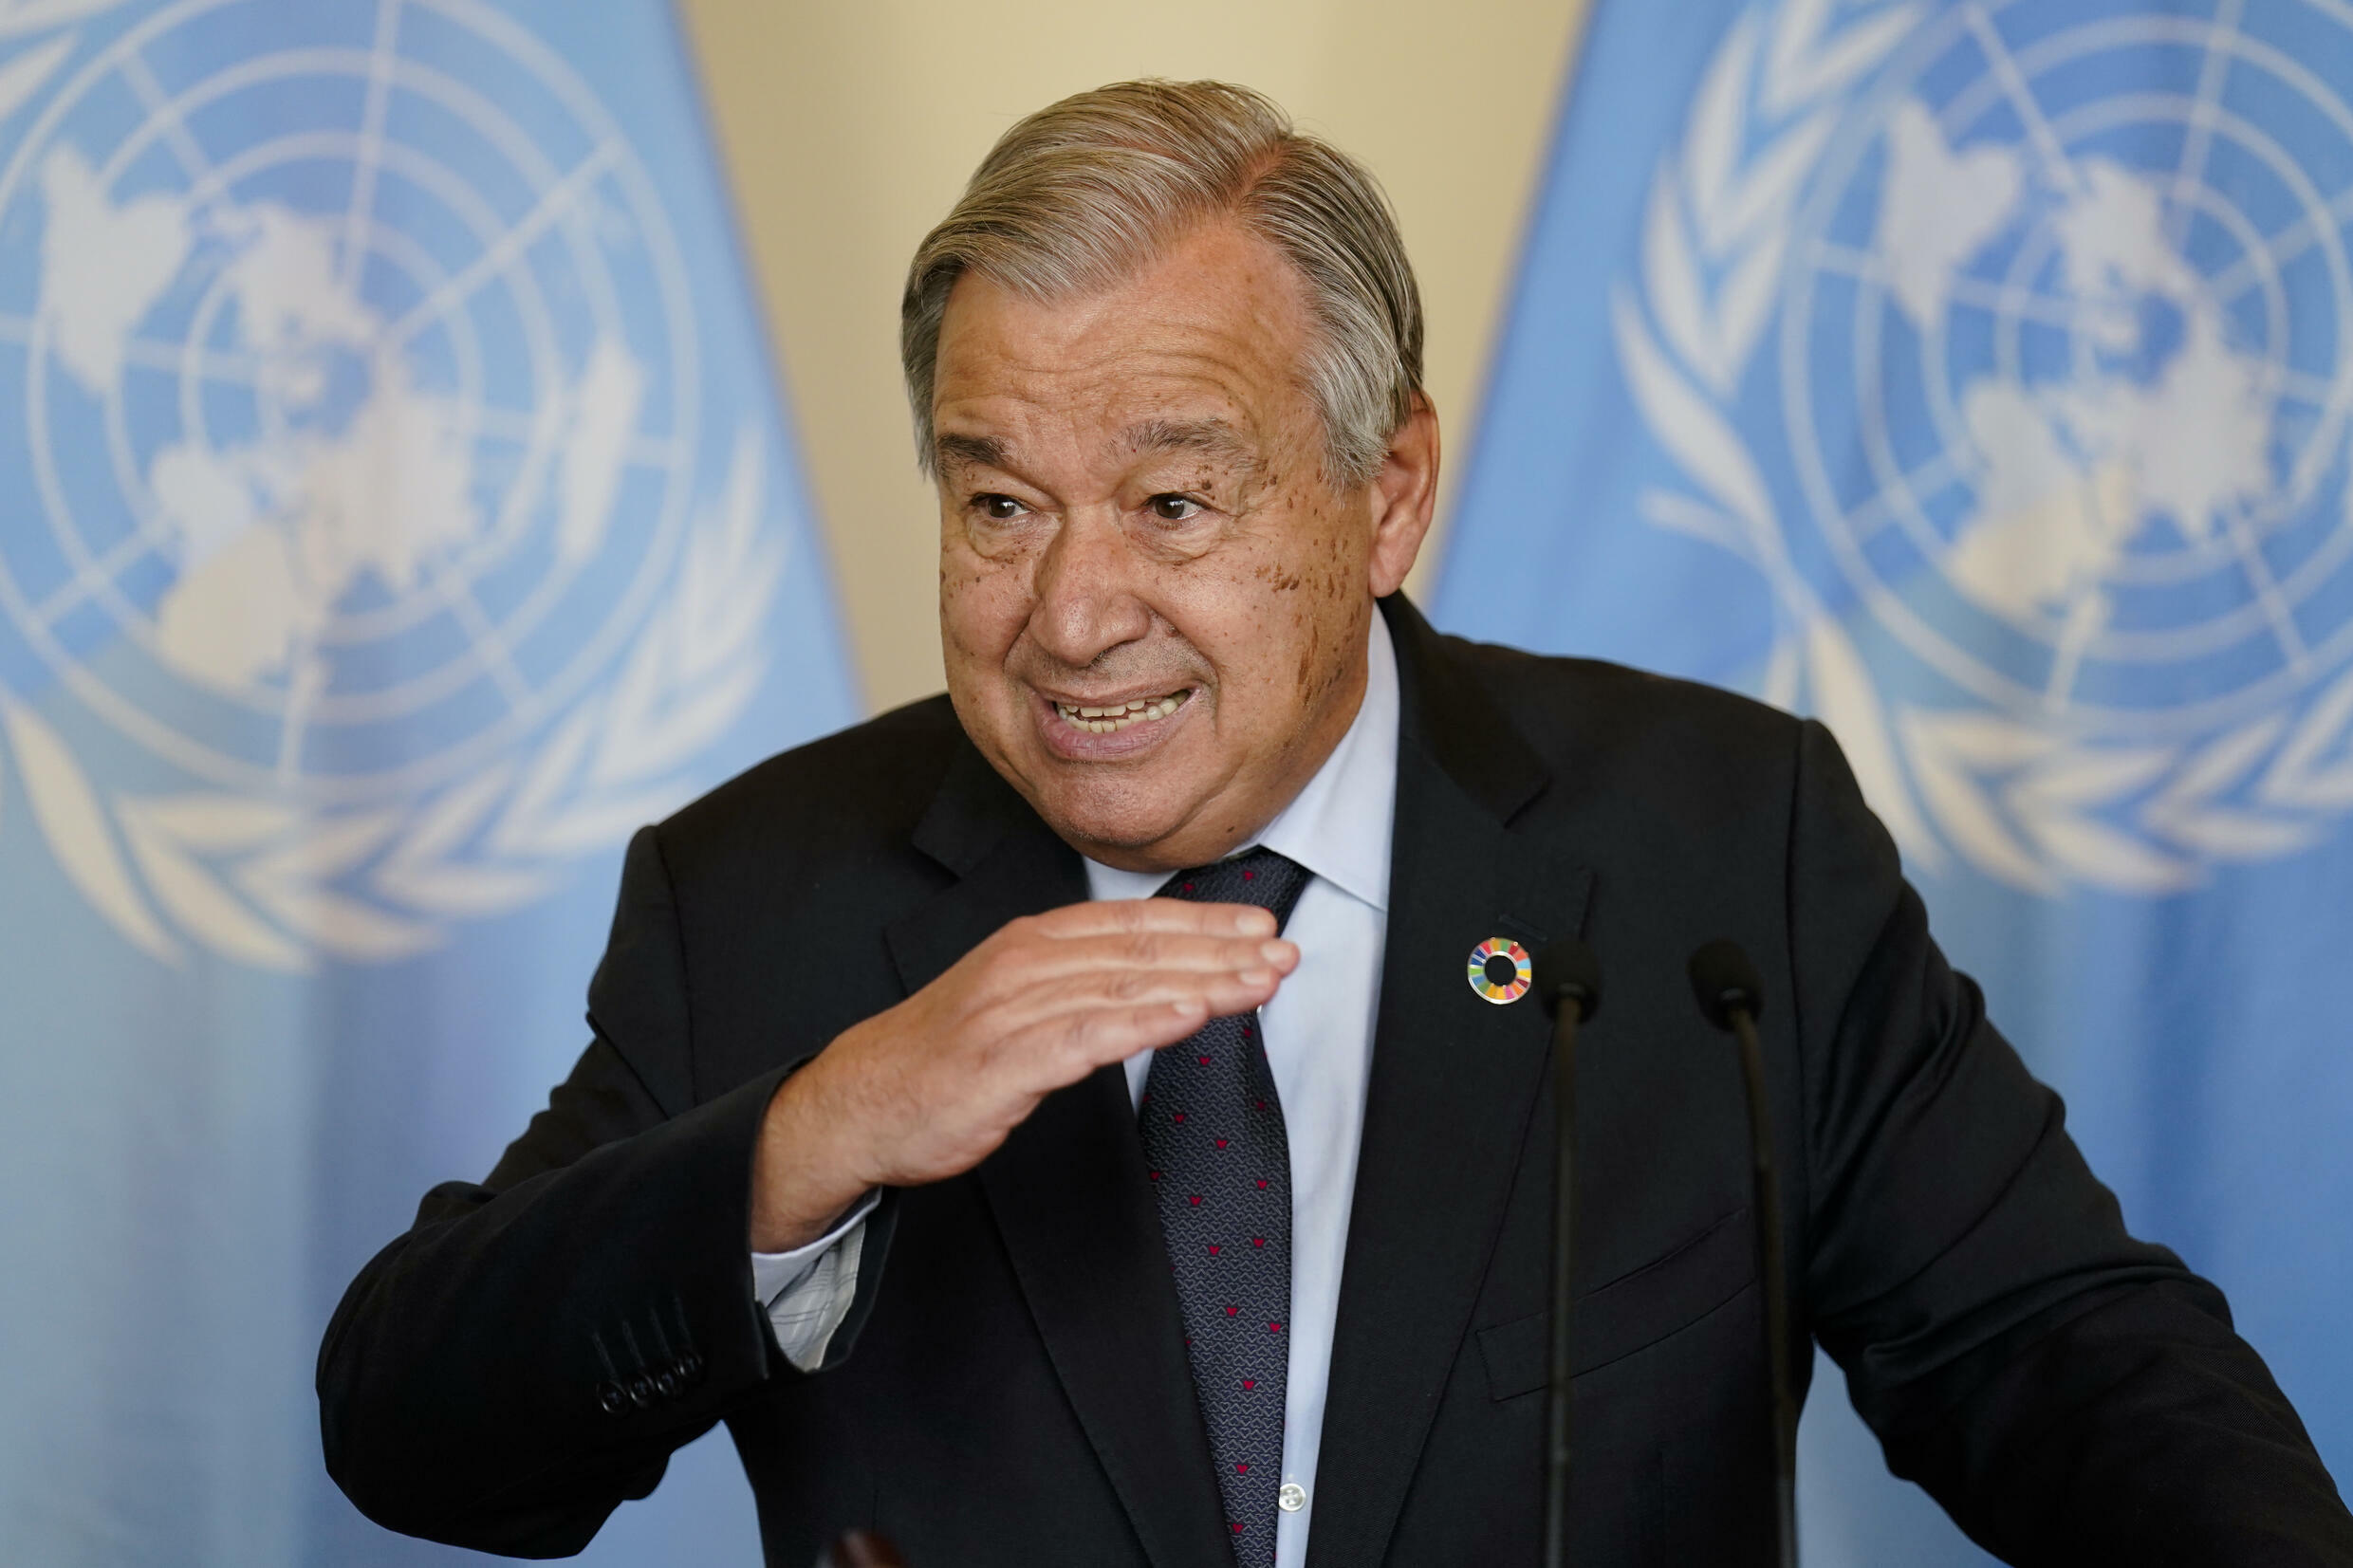 Antonio Guterres, Secretary General of the United Nations, co-hosted a closed-door meeting with several leaders of wealthy nations as part of UN climate week